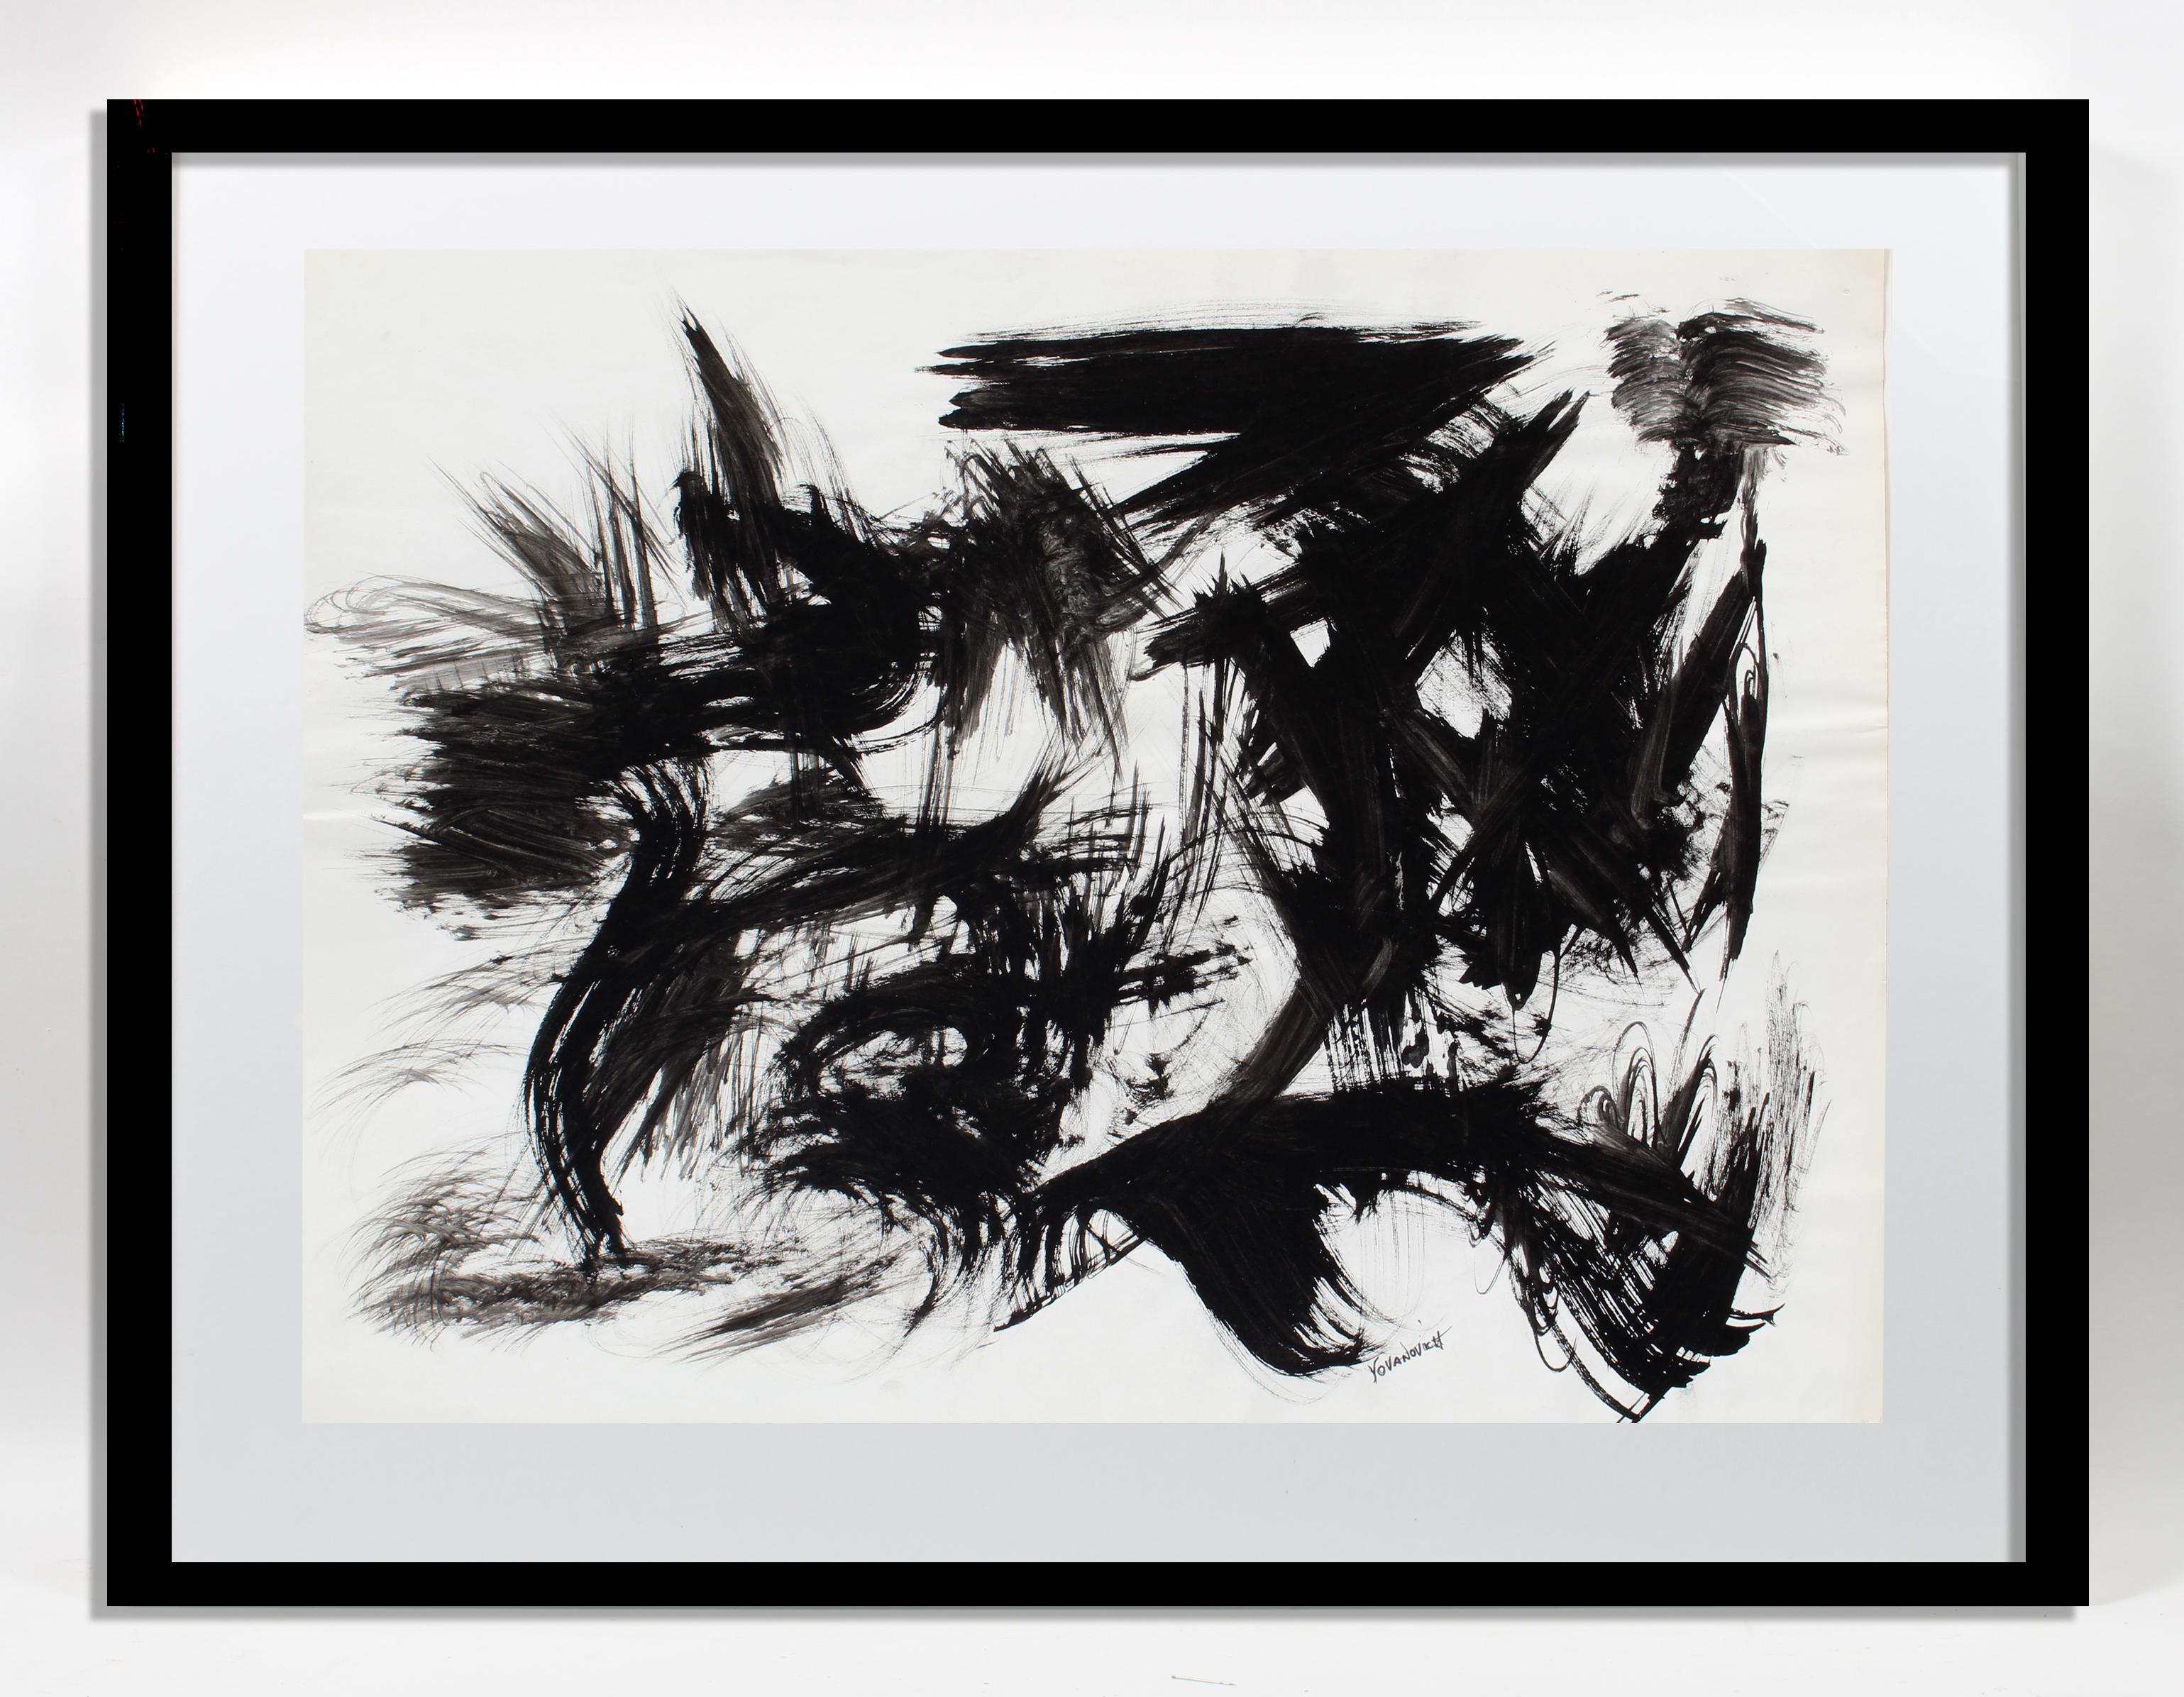 Toma Yovanovich Mid Century Abstract Expressionist Painting 1960 Black and White